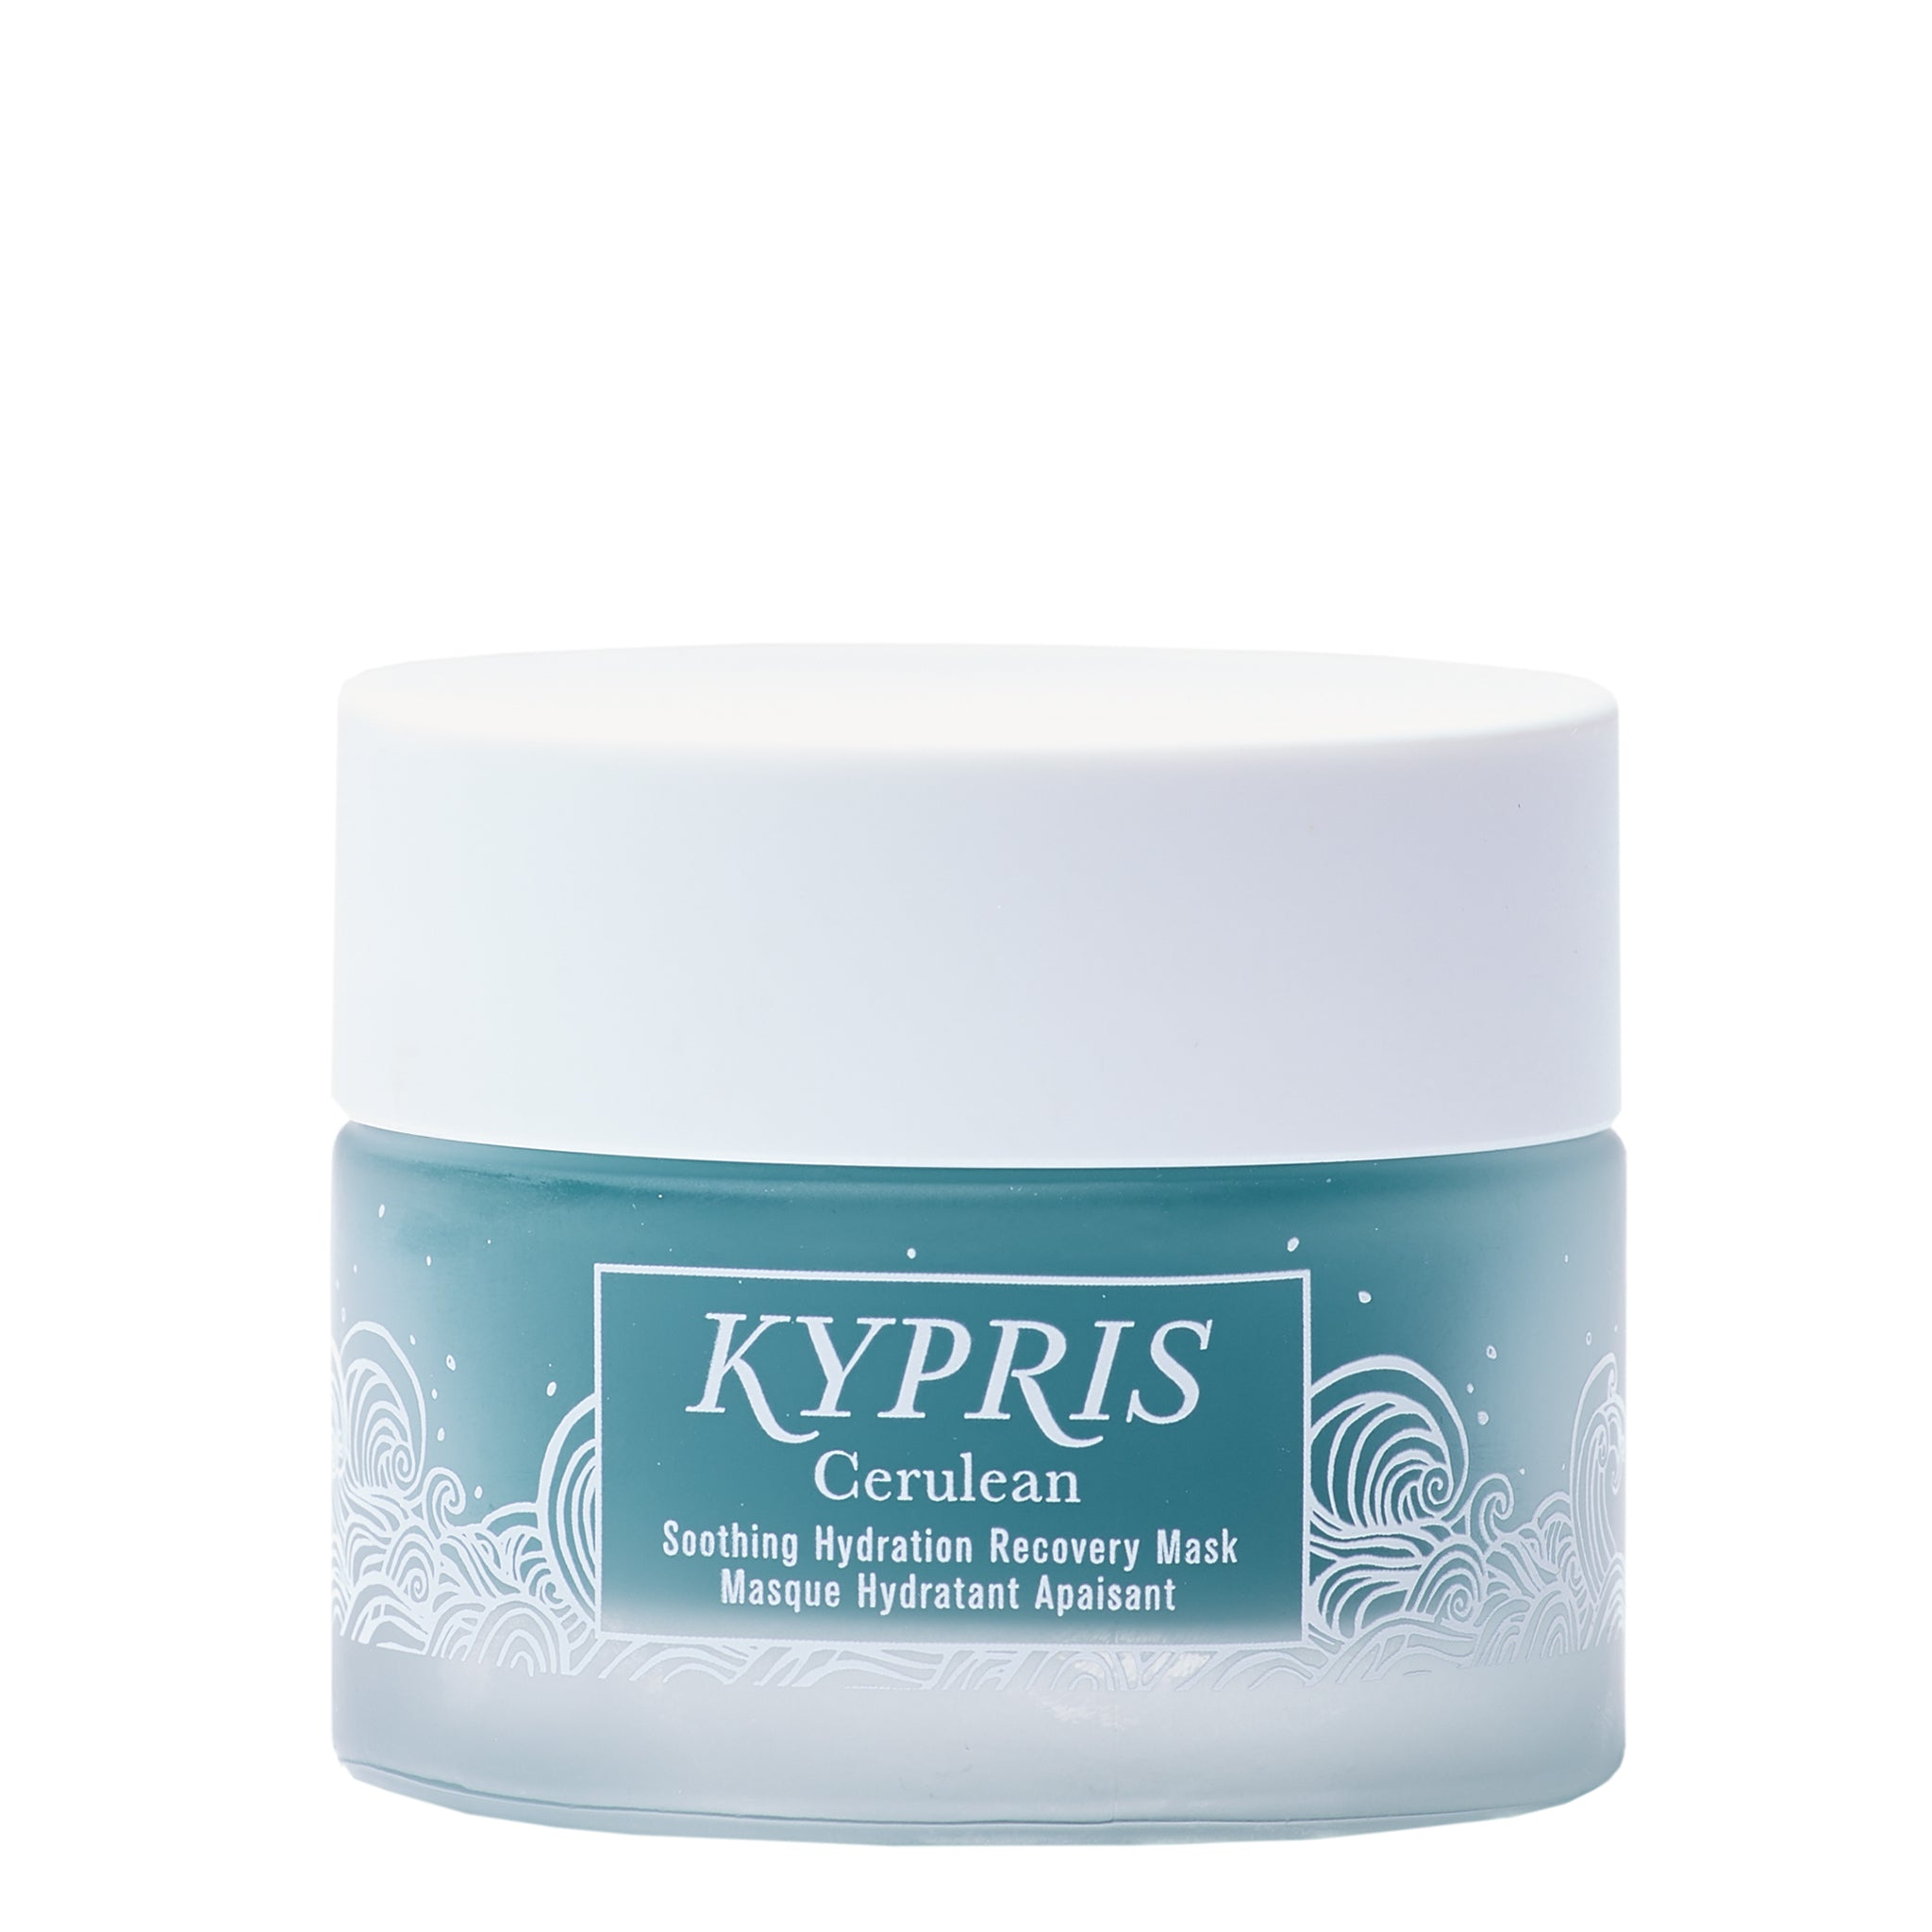 Cerulean Soothing Hydration Recovery Mask Kypris Beauty